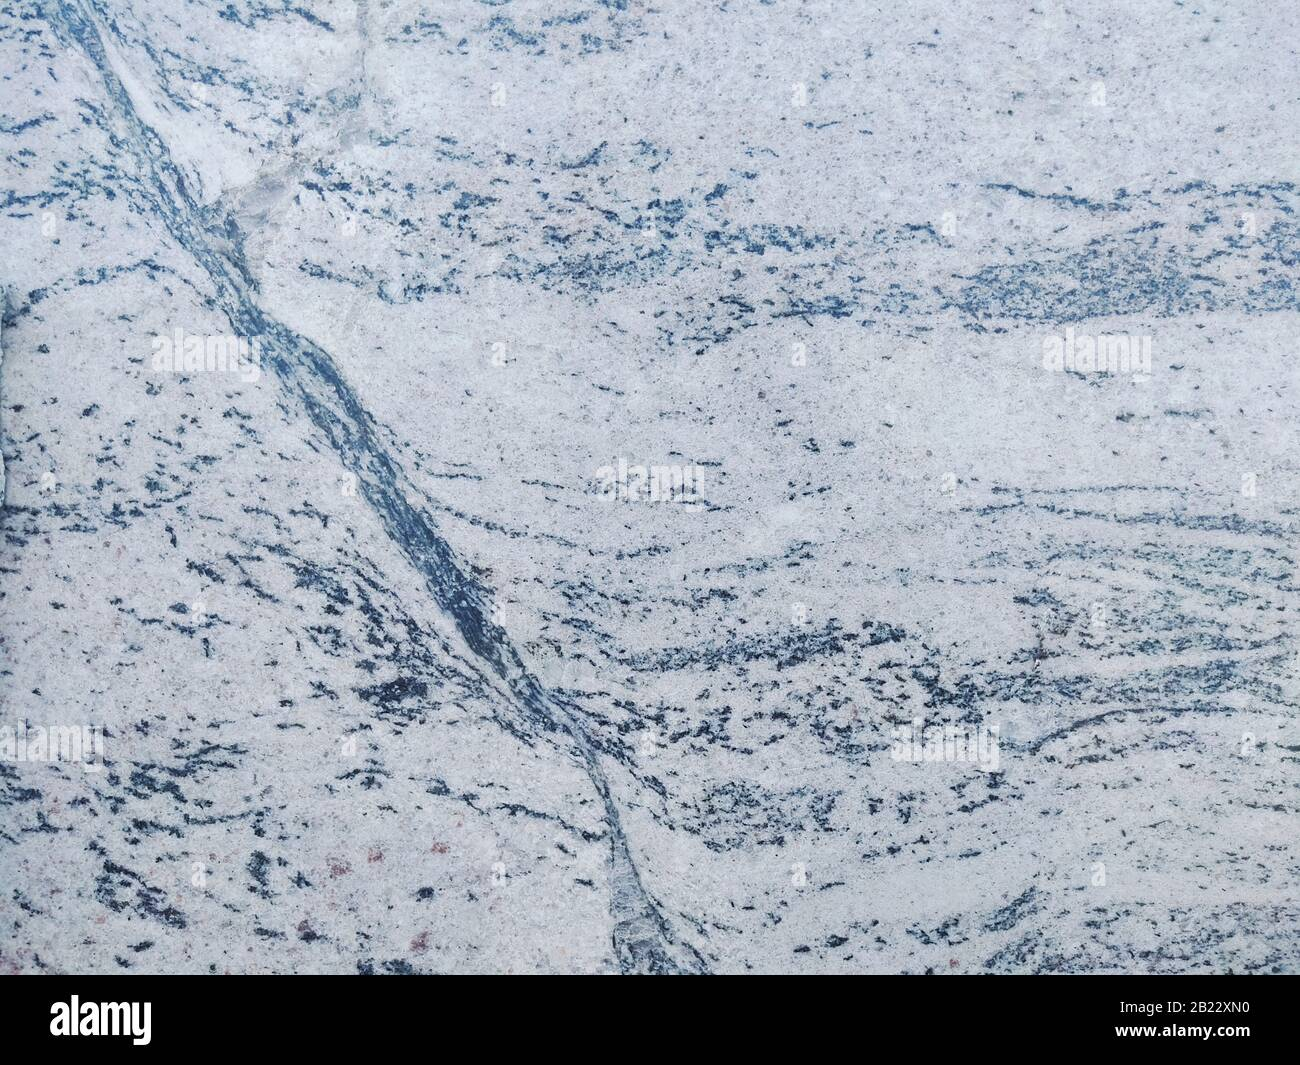 White Cracked Marble Rock Stone Marble Texture Wallpaper Background Big Size 8000 6000 Stock Photo Alamy